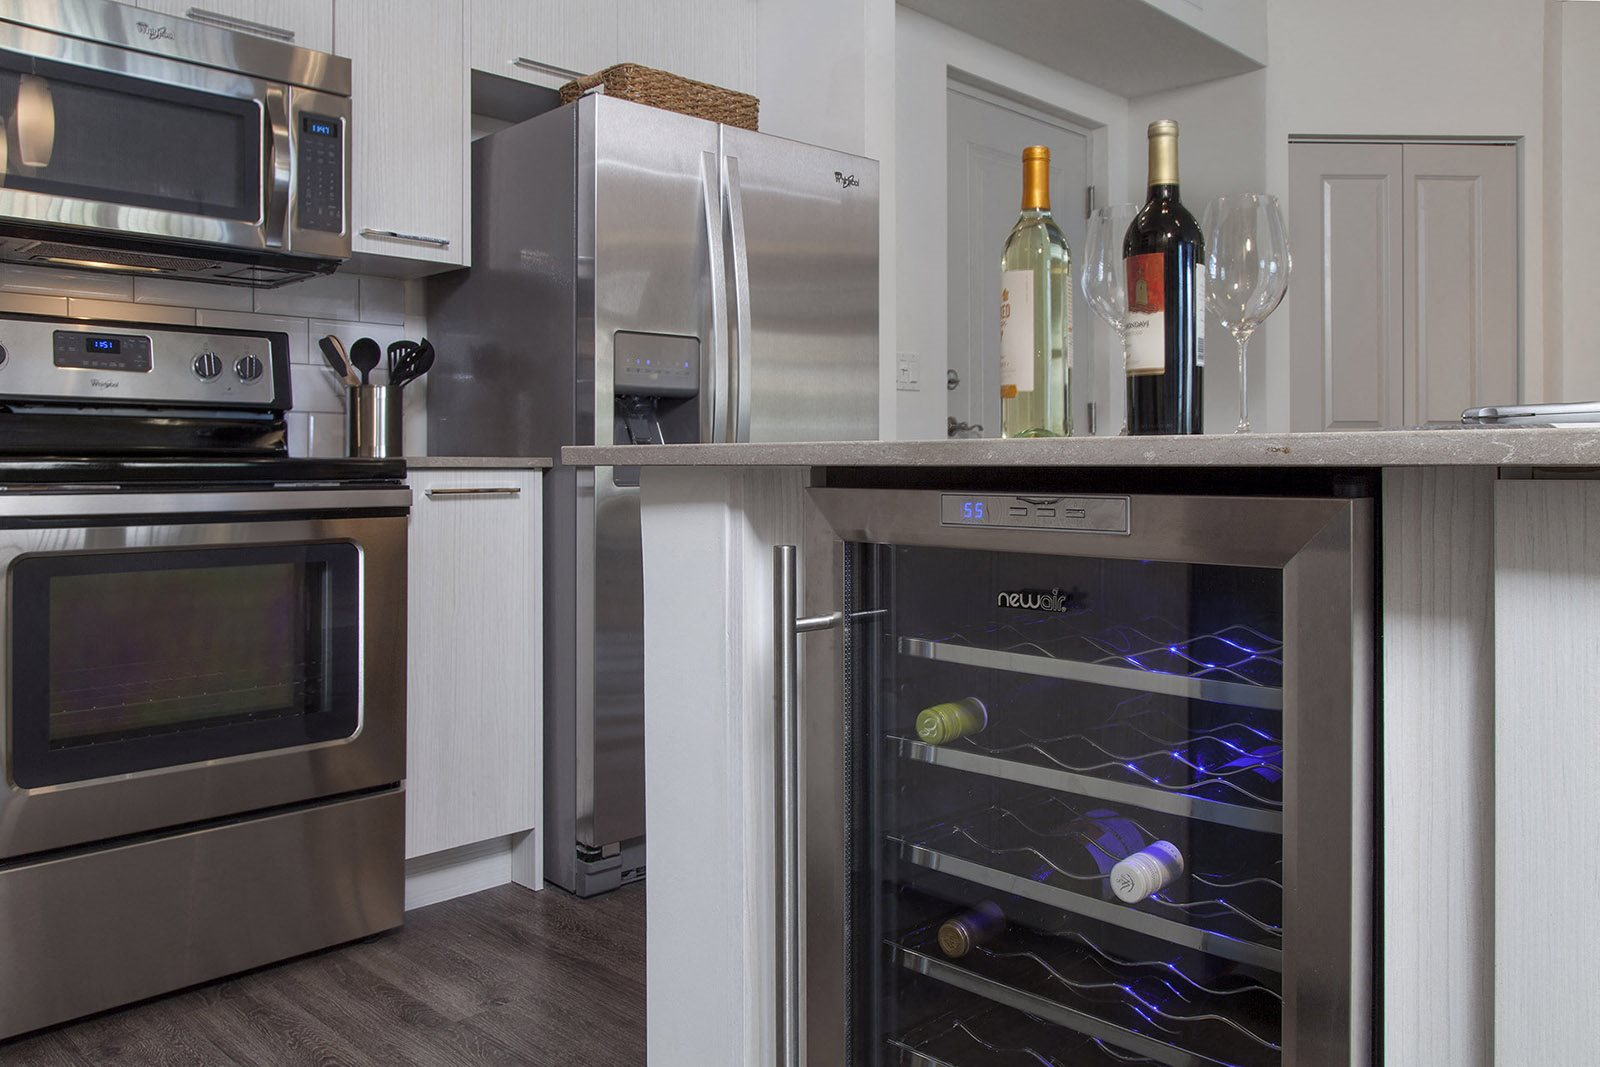 Our Delray Beach apartments offer kitchens with luxury features including wine coolers at Windsor at Delray Beach, Florida